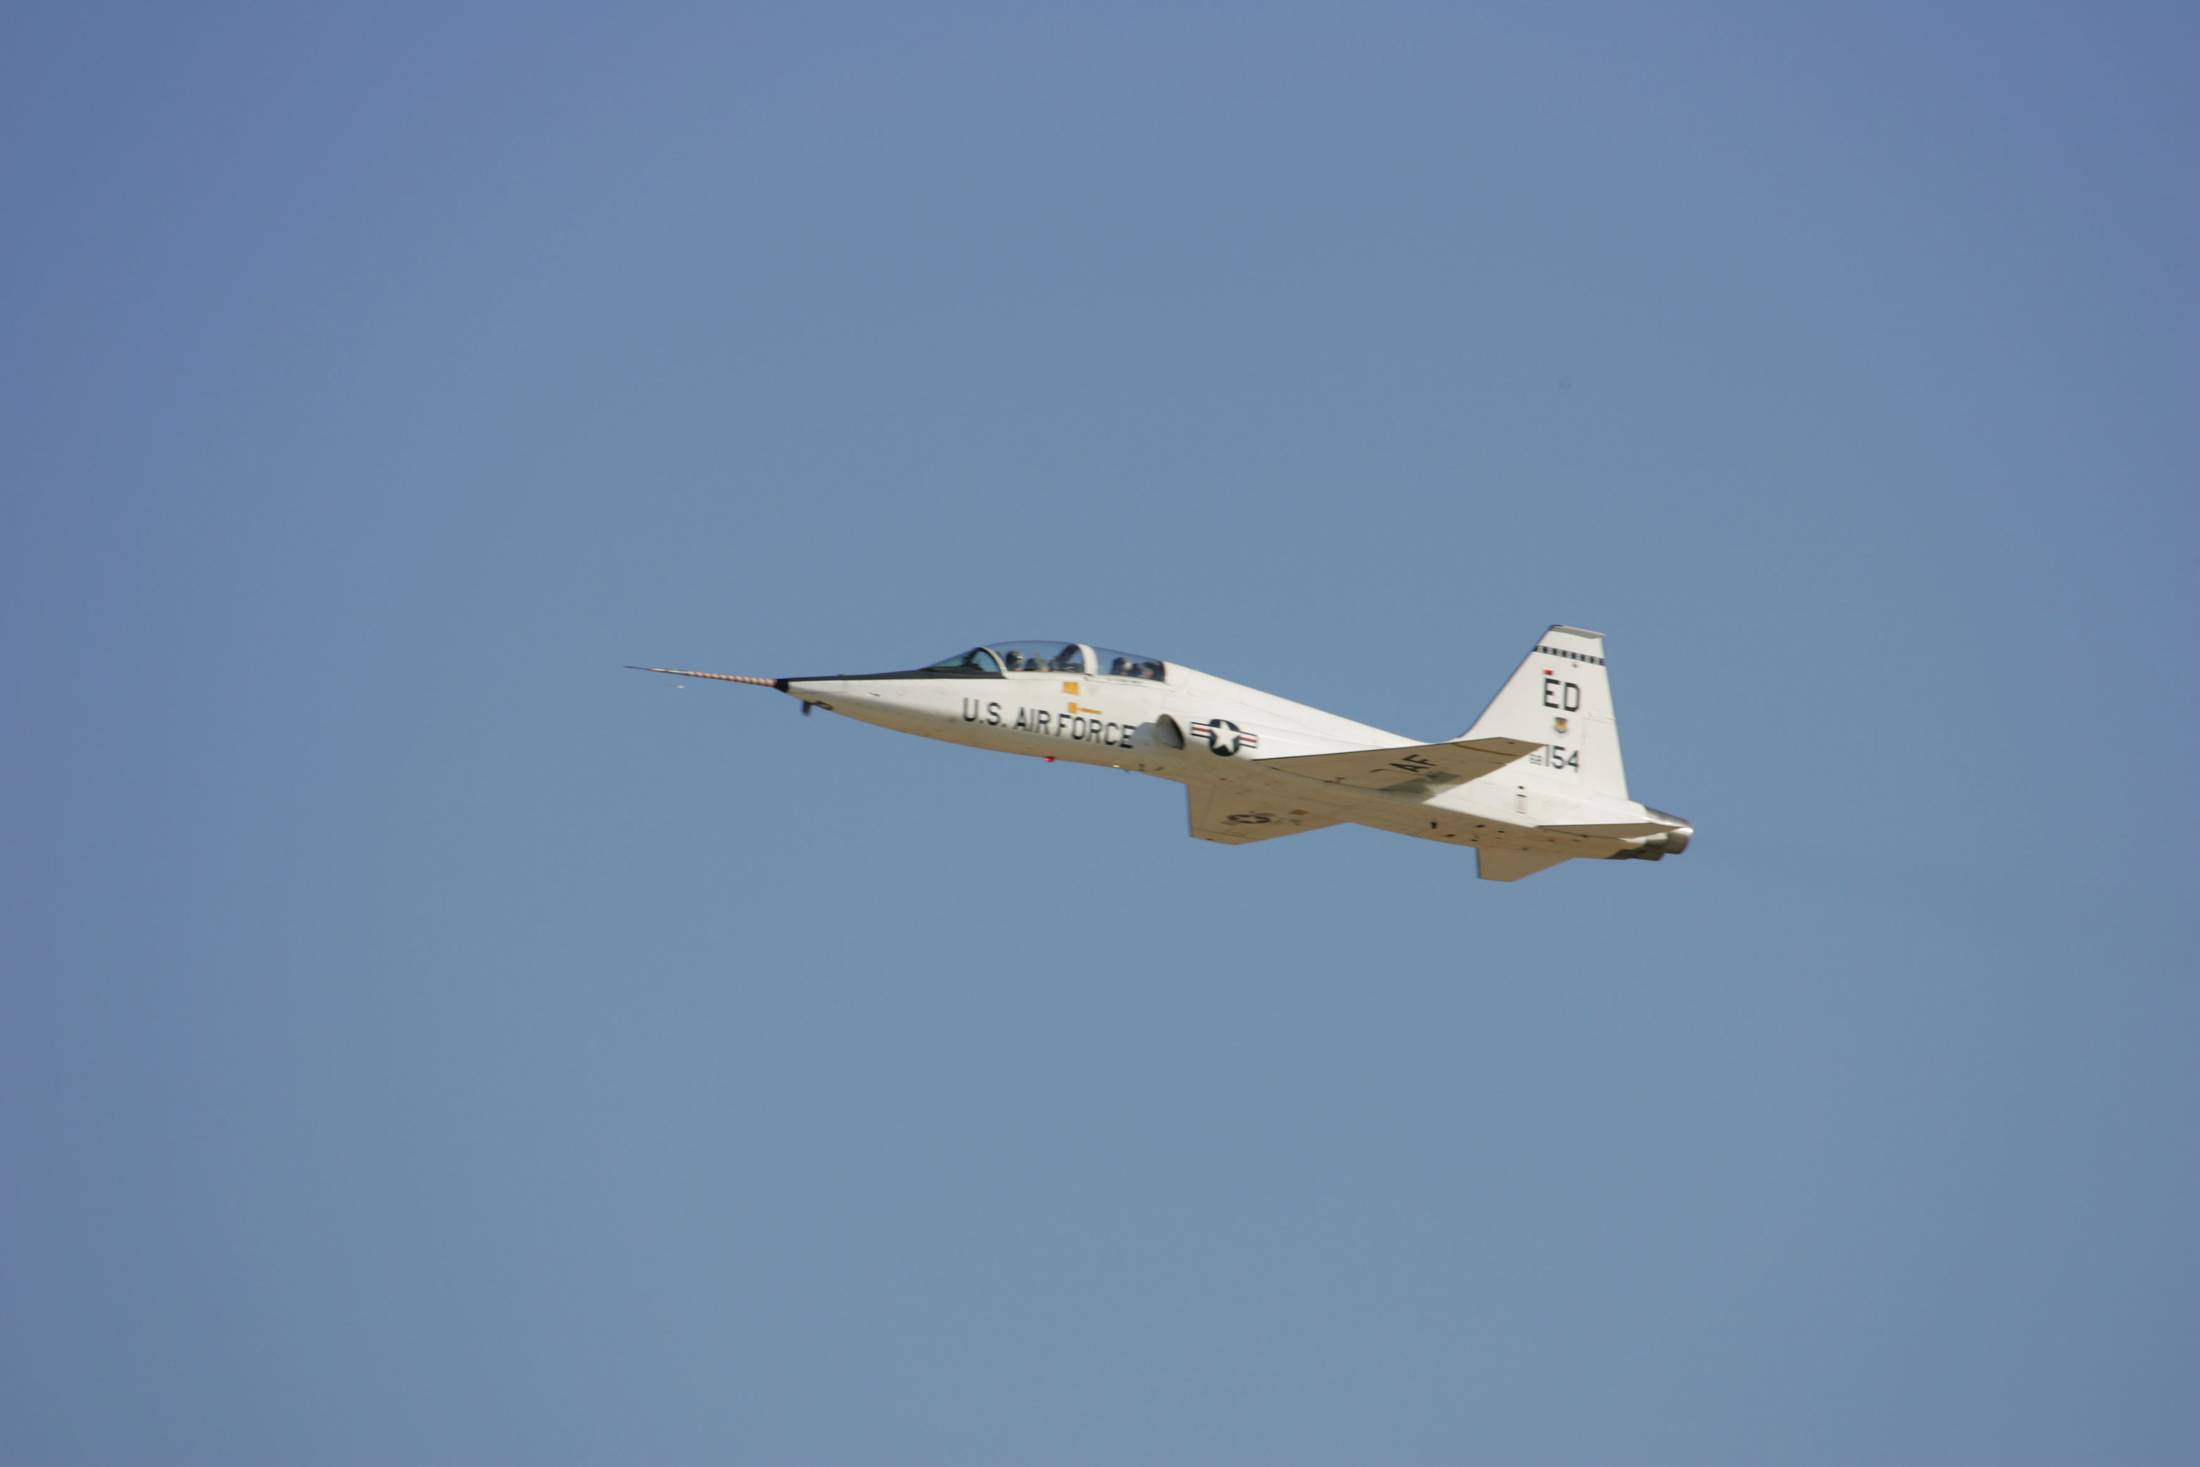 A NASA T-38 Trainer aircraft takes off from Edwards Air Force Base in California in 2005. | REUTERS